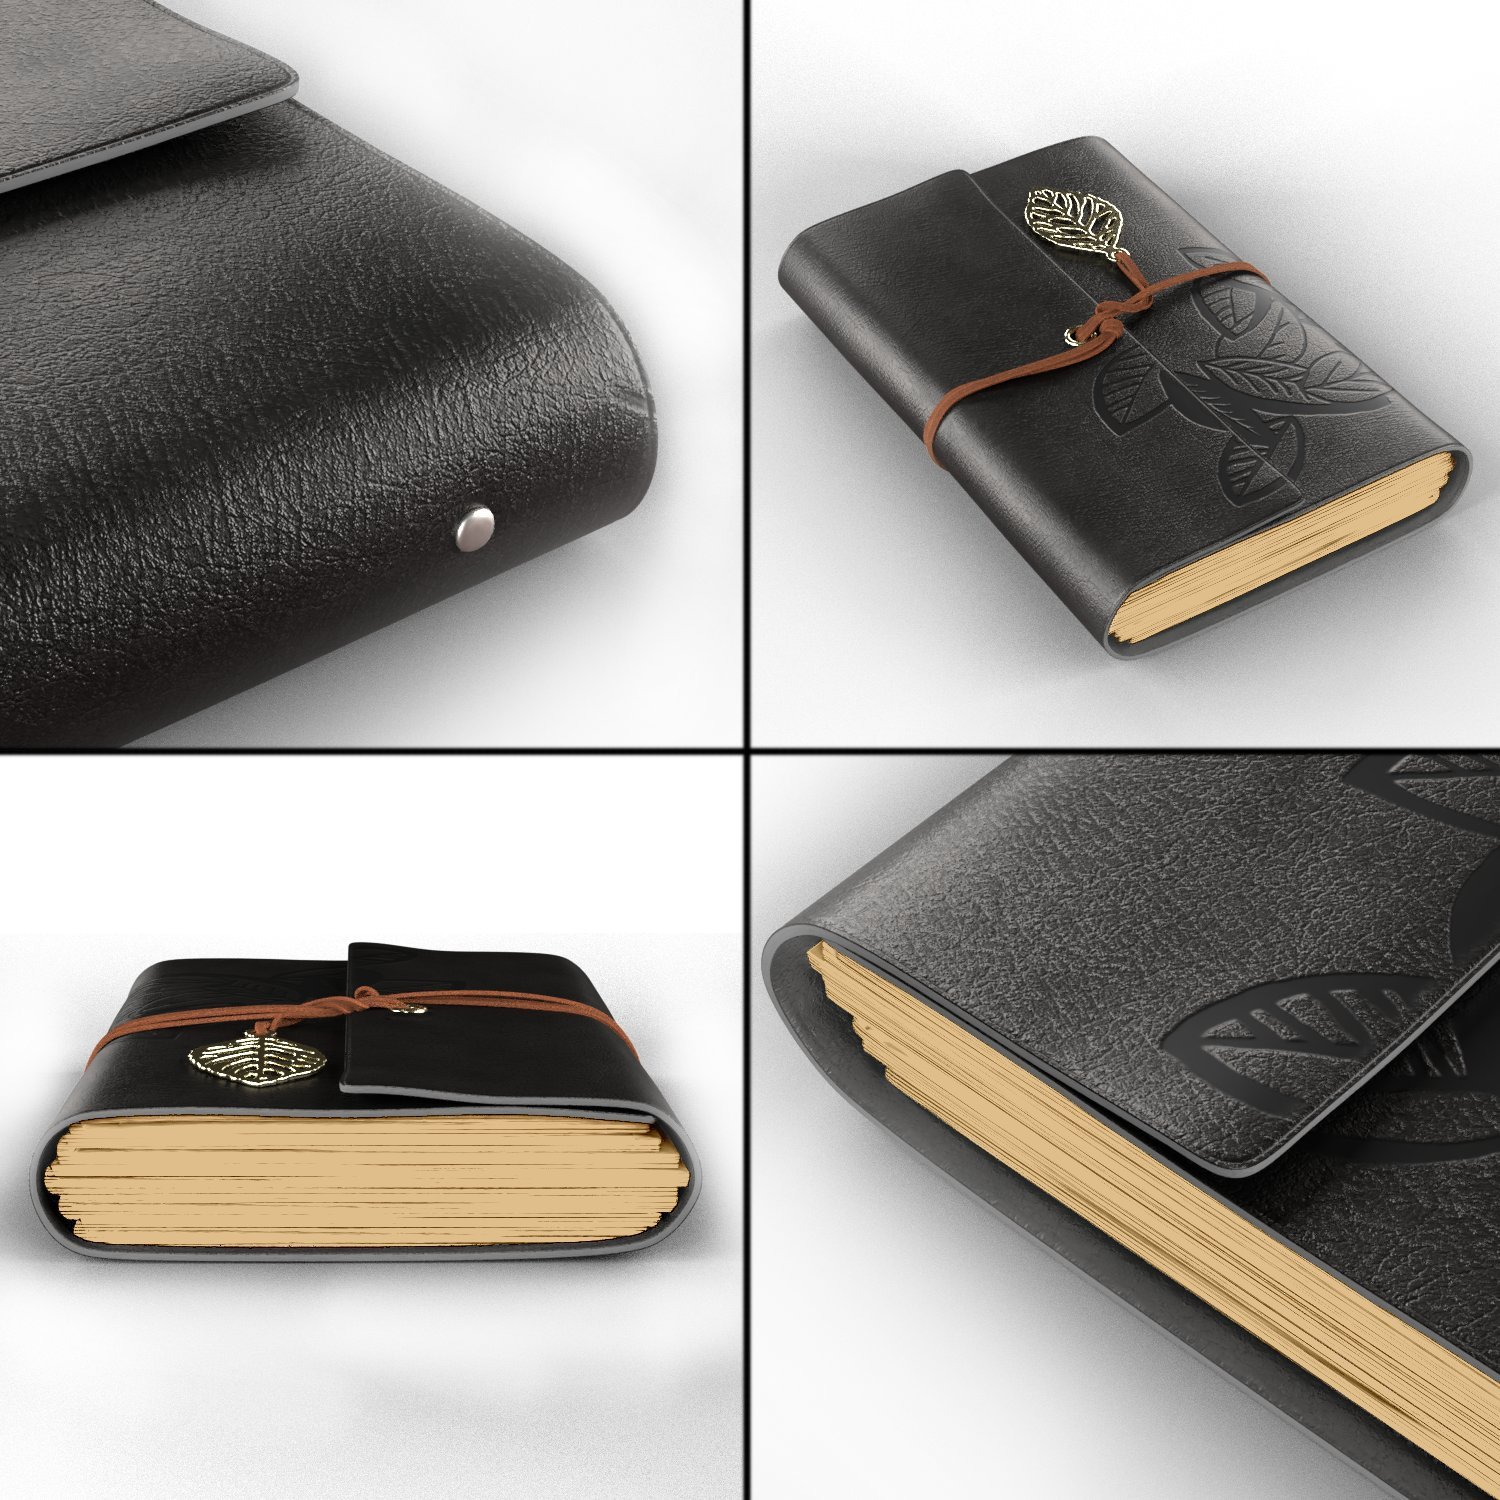 Leather Journal Writing Notebook - Leather Bound Daily Notepad for Men & Women Unlined Paper Medium 7 x 5 inches, Best Gift for Art Sketchbook, Travel Diary & Notebooks to Write in by Foster Gadgets (Image #3)